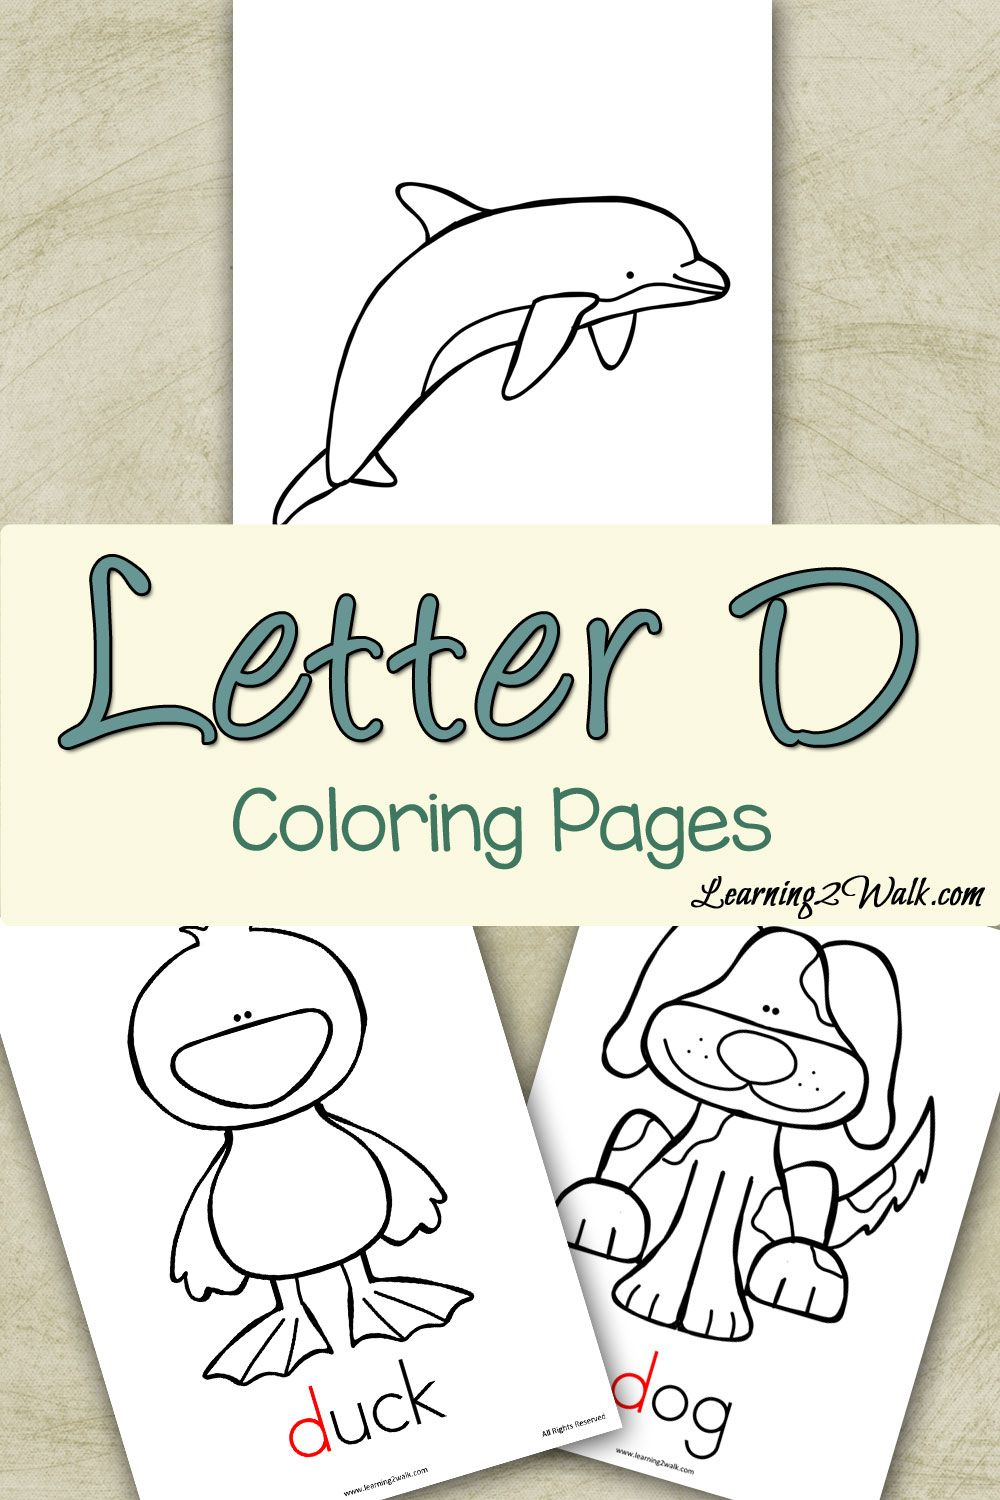 Letter Activities: Letter D Coloring Pages